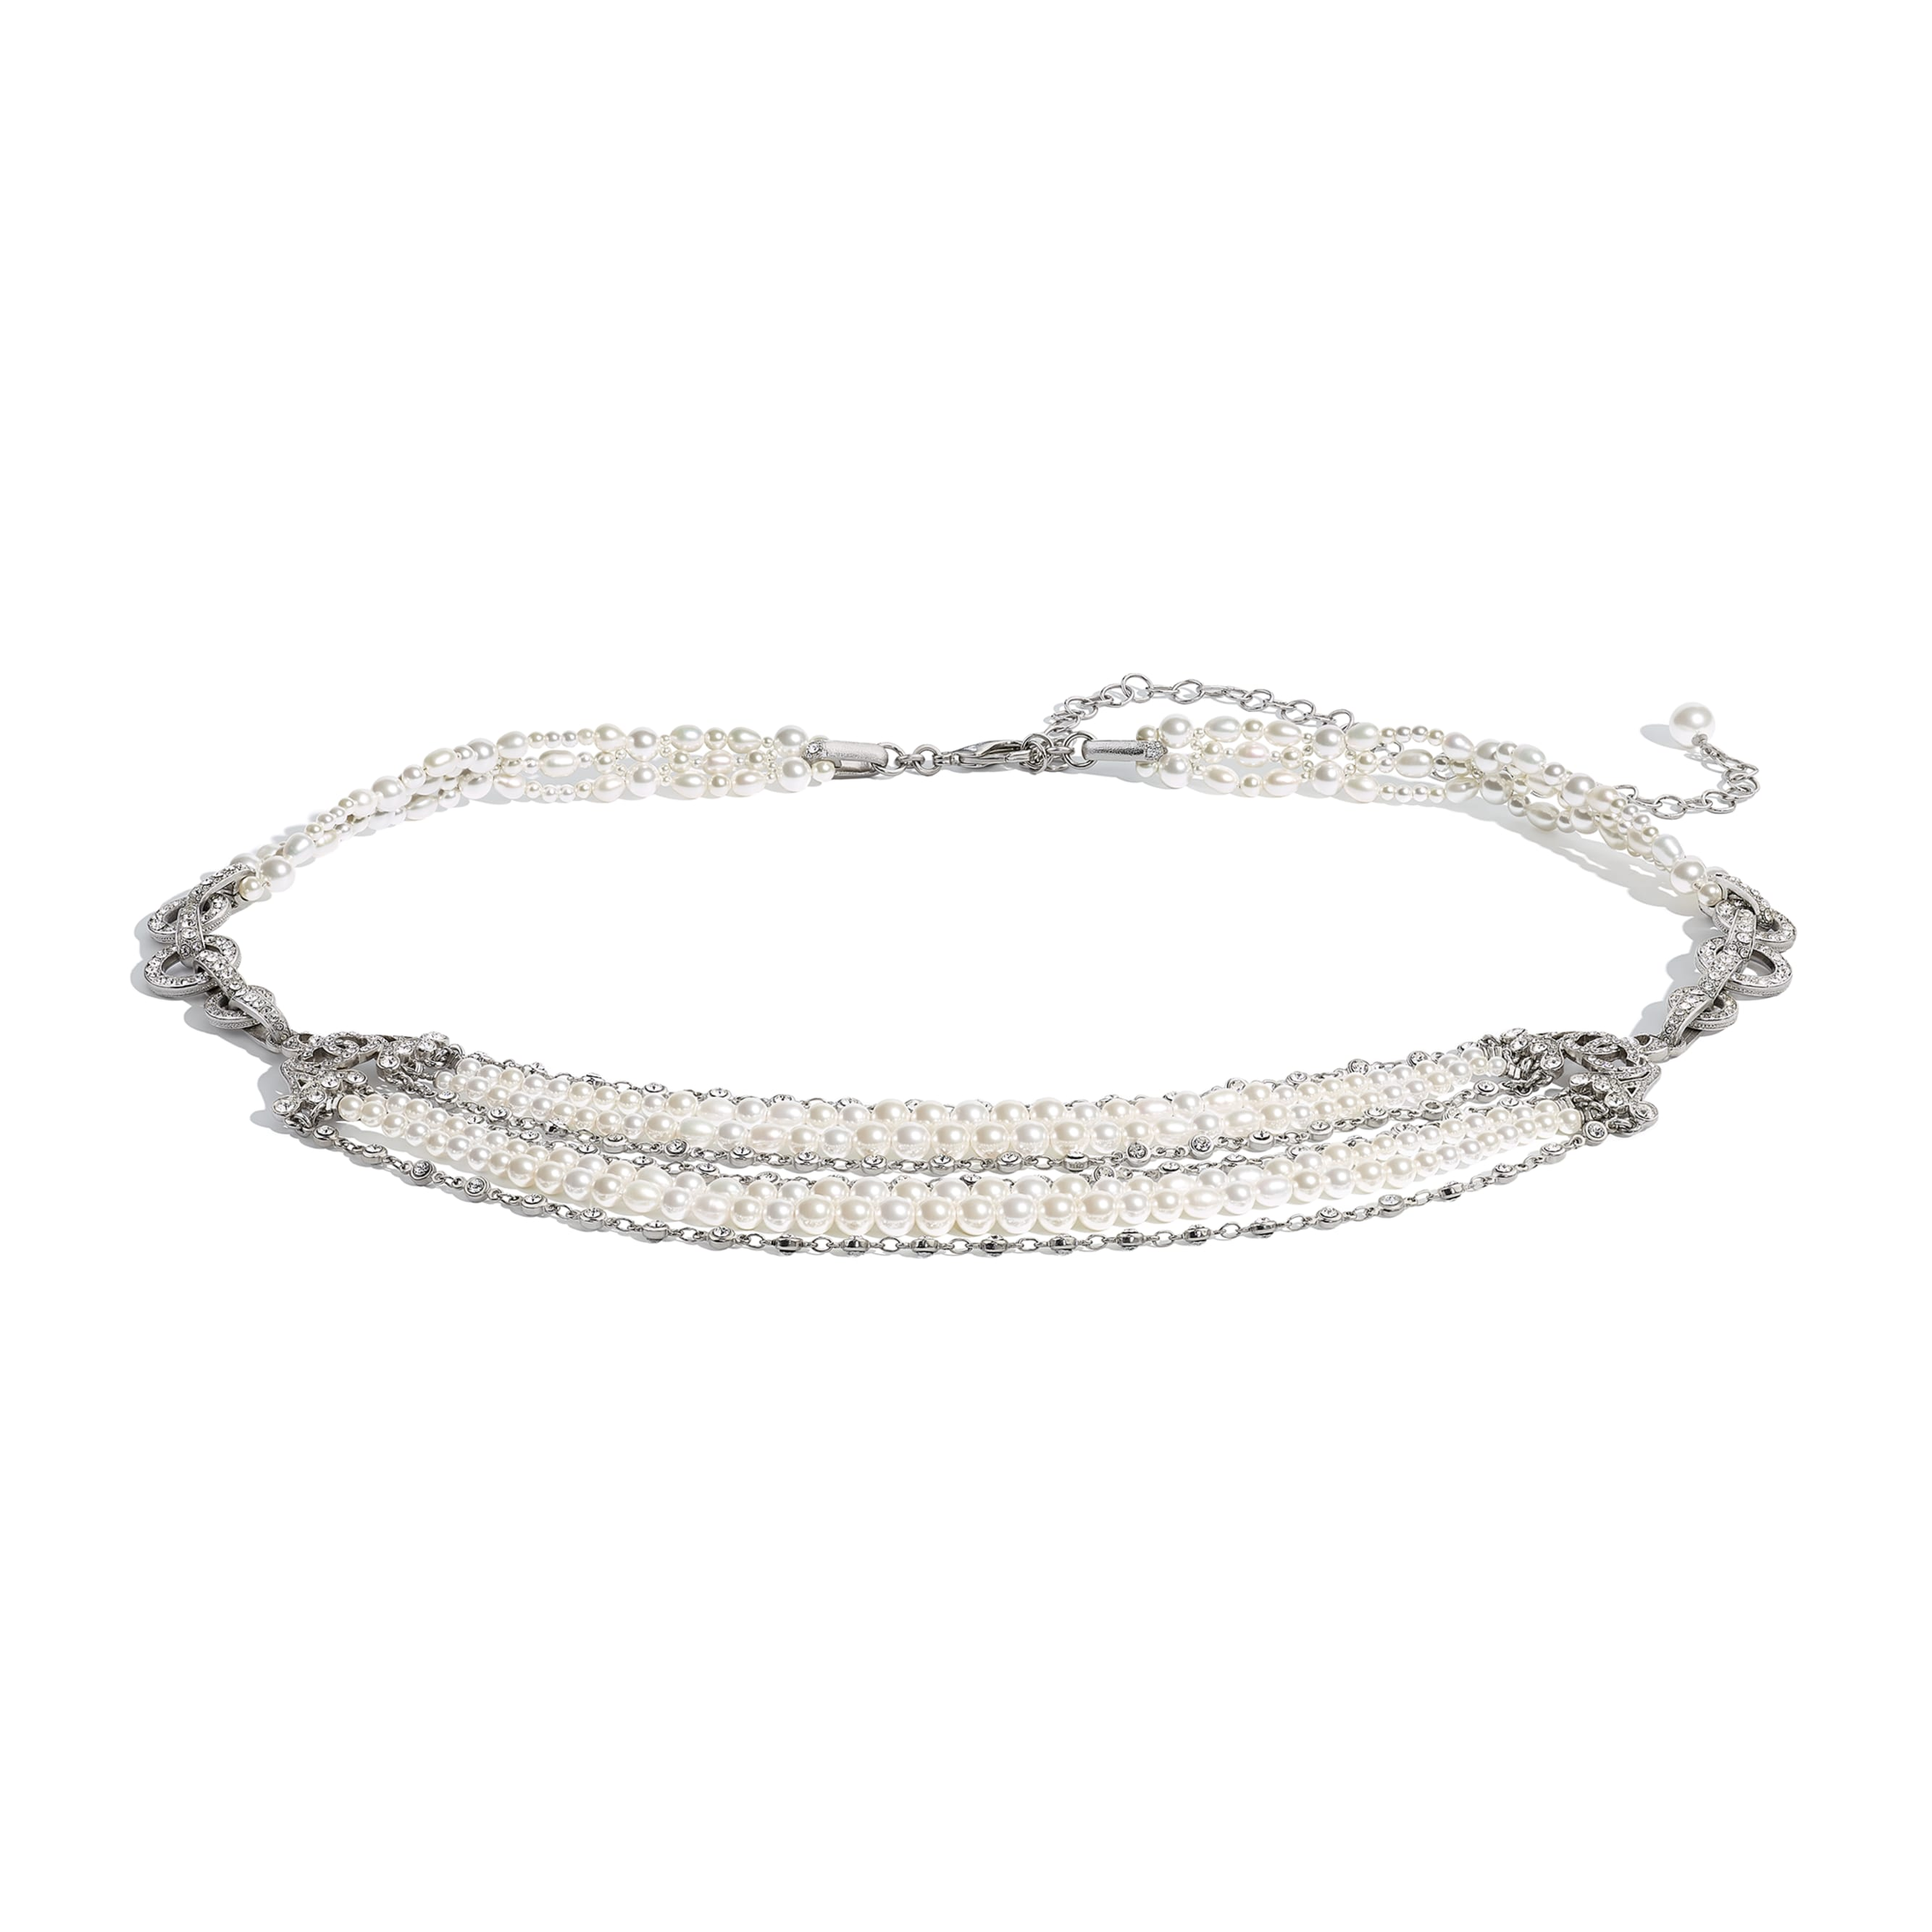 Belt - Silver, Pearly White & Crystal - Metal, Cultured Freshwater Pearls, Glass Pearls & Strass - CHANEL - Default view - see standard sized version